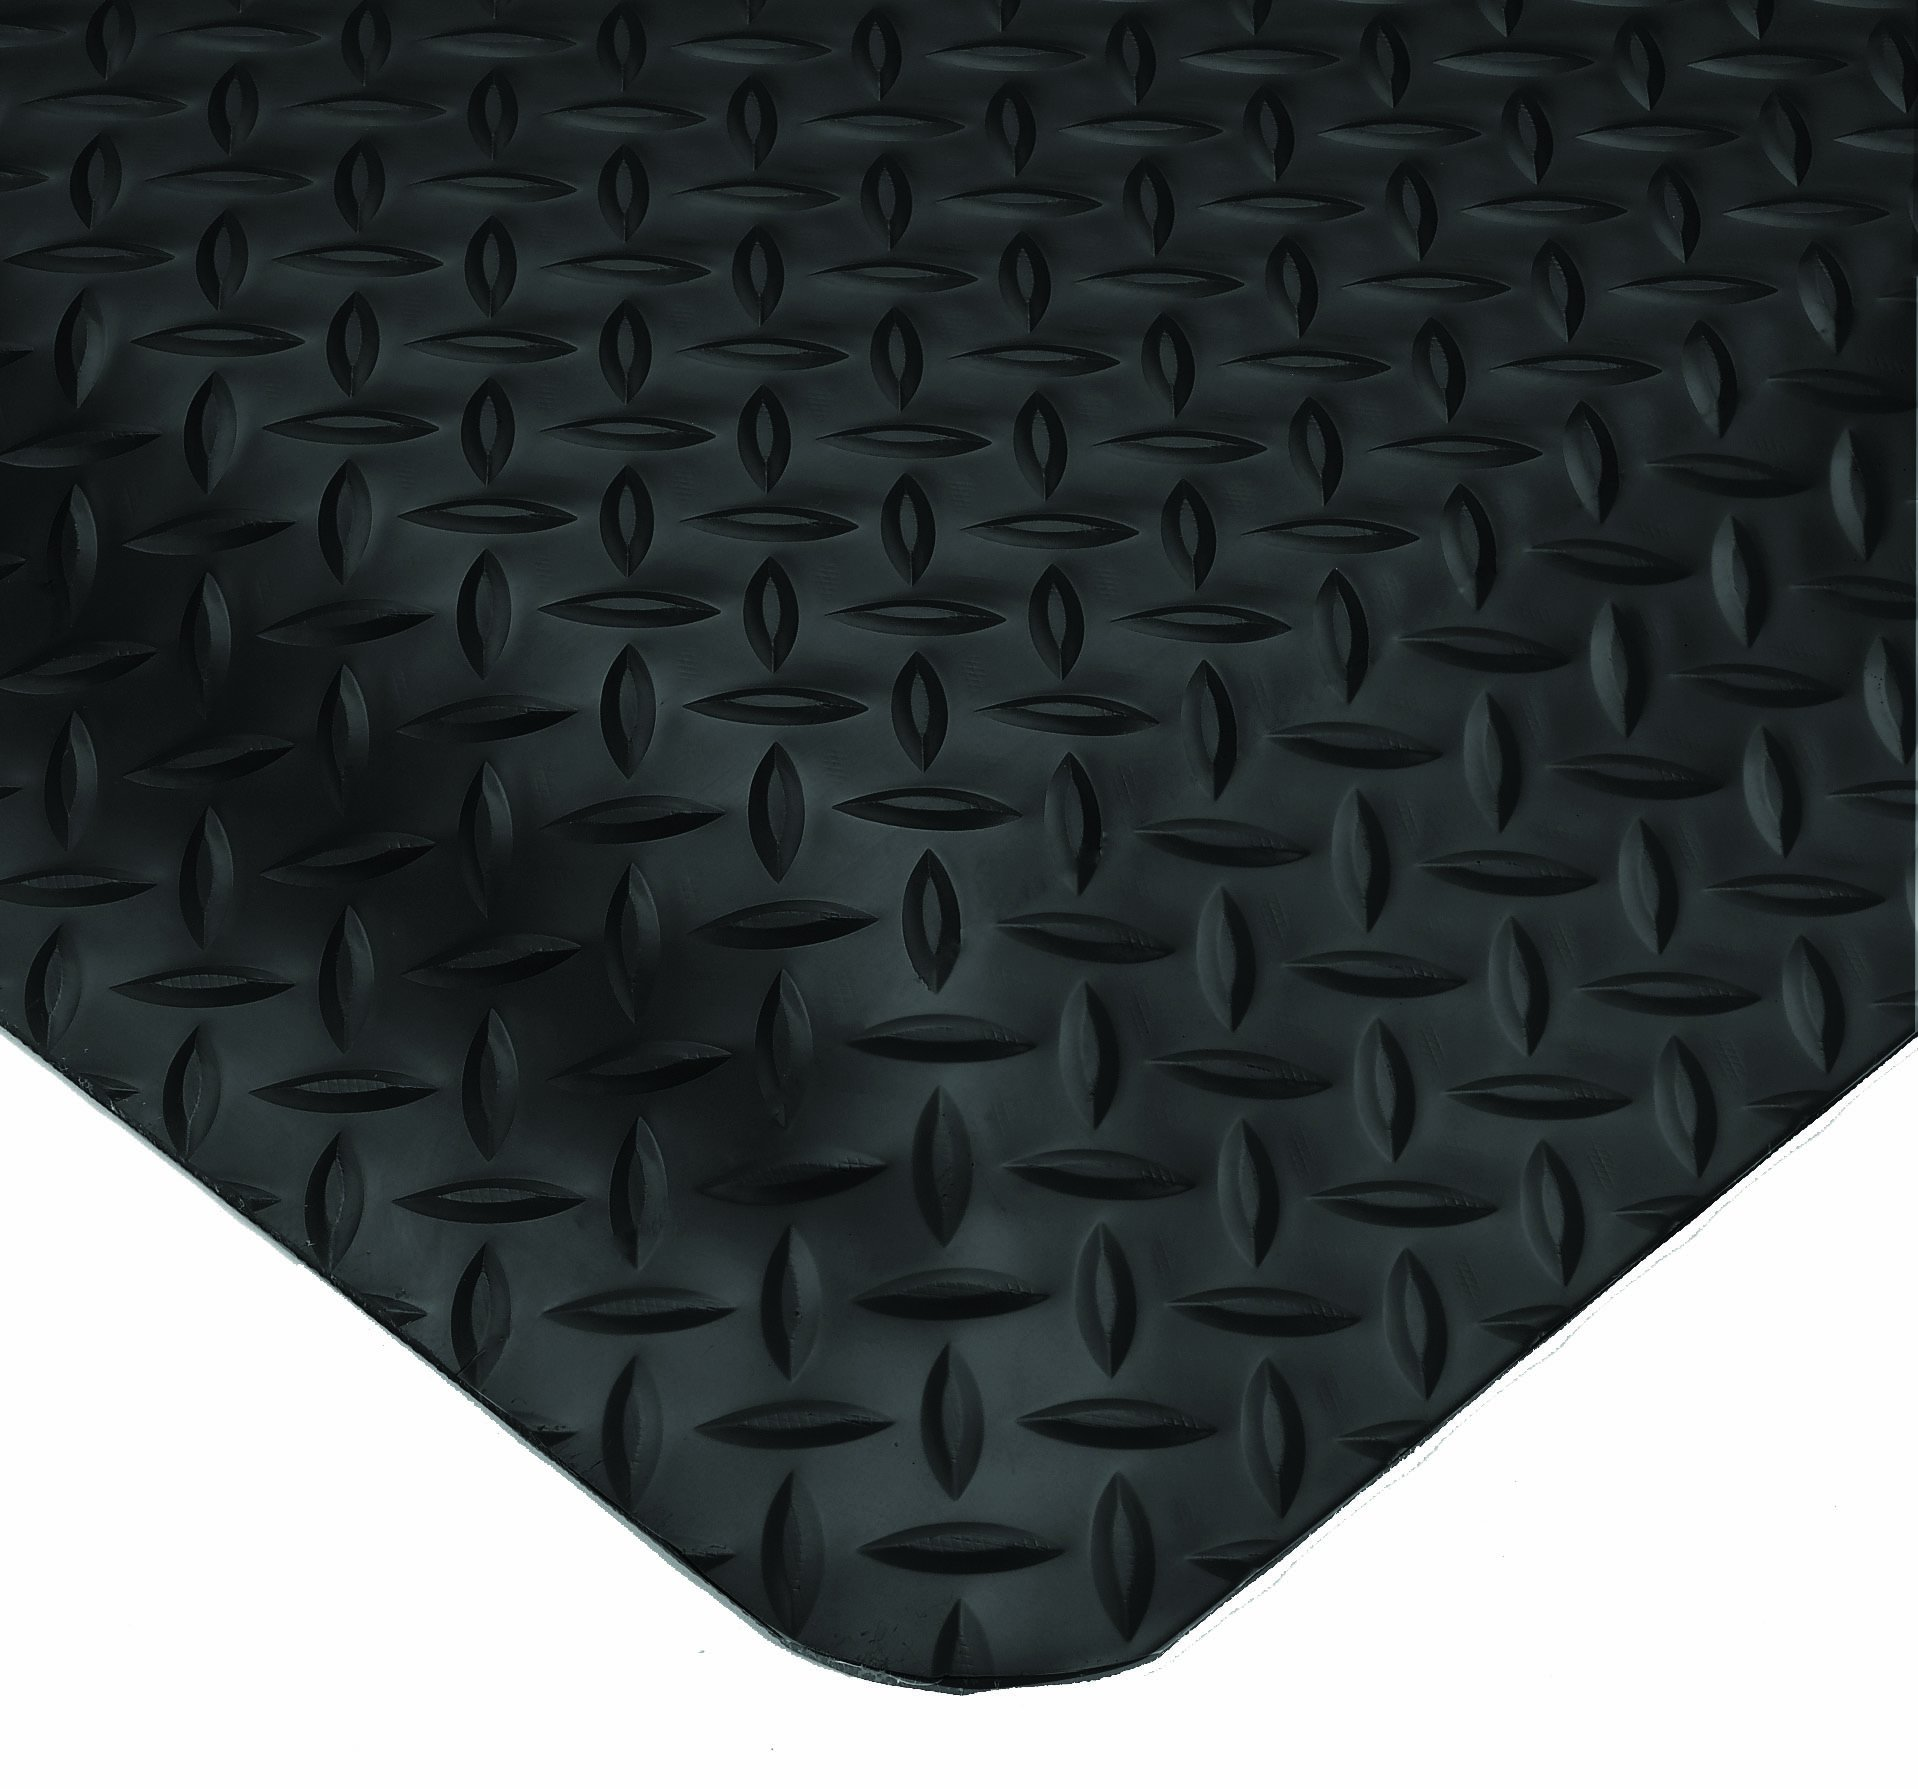 Wearwell PVC 414 UltraSoft Diamond-Plate Heavy Duty Anti-Fatigue Mat, Safety Beveled Edges, for Dry Areas, 3' Width x 10' Length x 15/16'' Thickness, Black by Wearwell Industrial (Image #1)